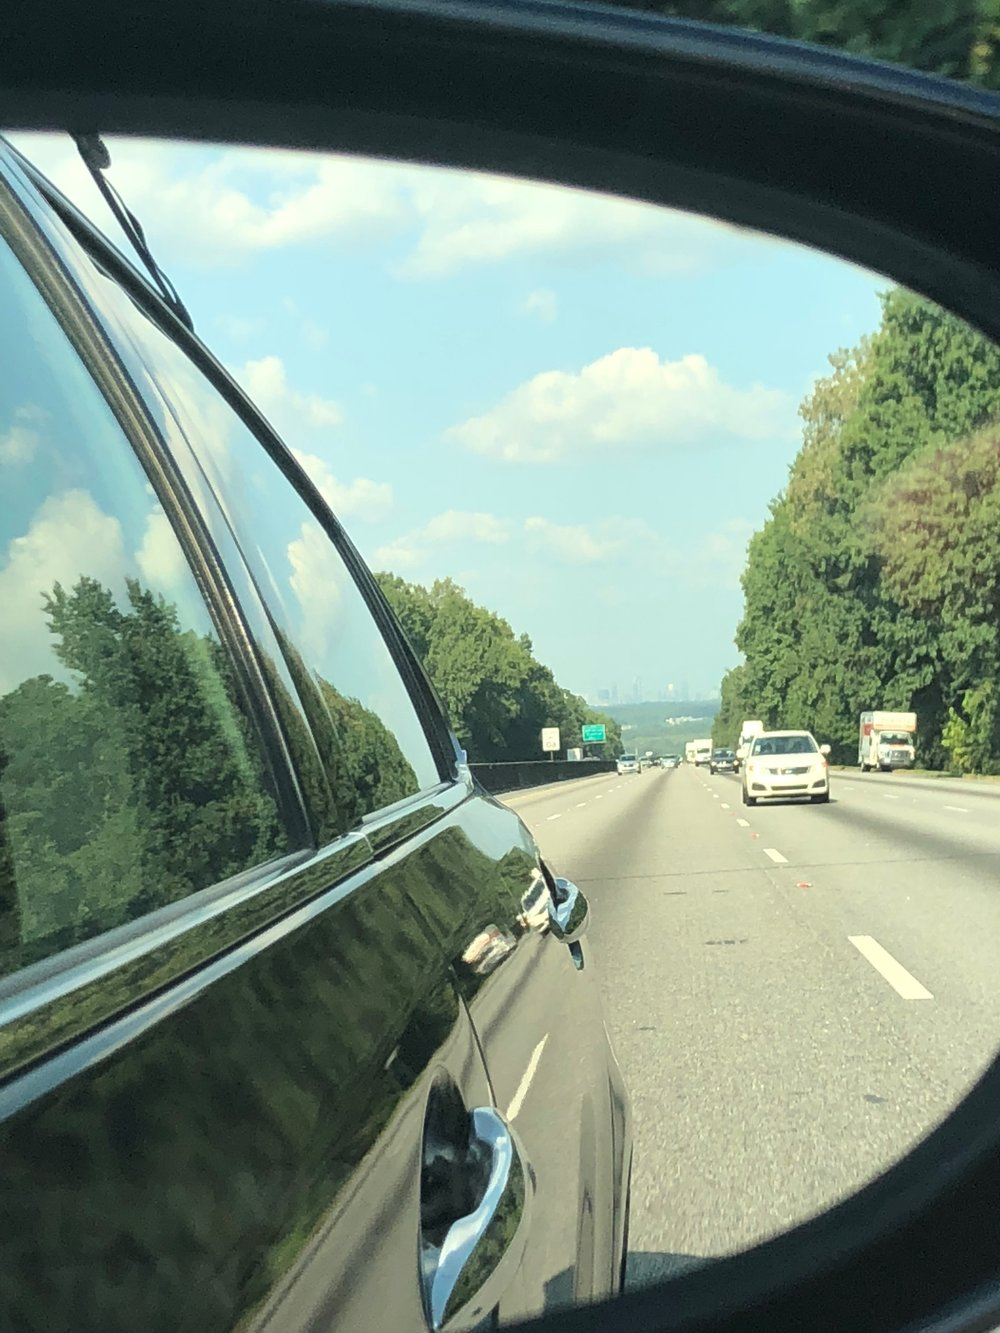 Saying goodbye to Atlanta, with its skyline in our rearview mirror.